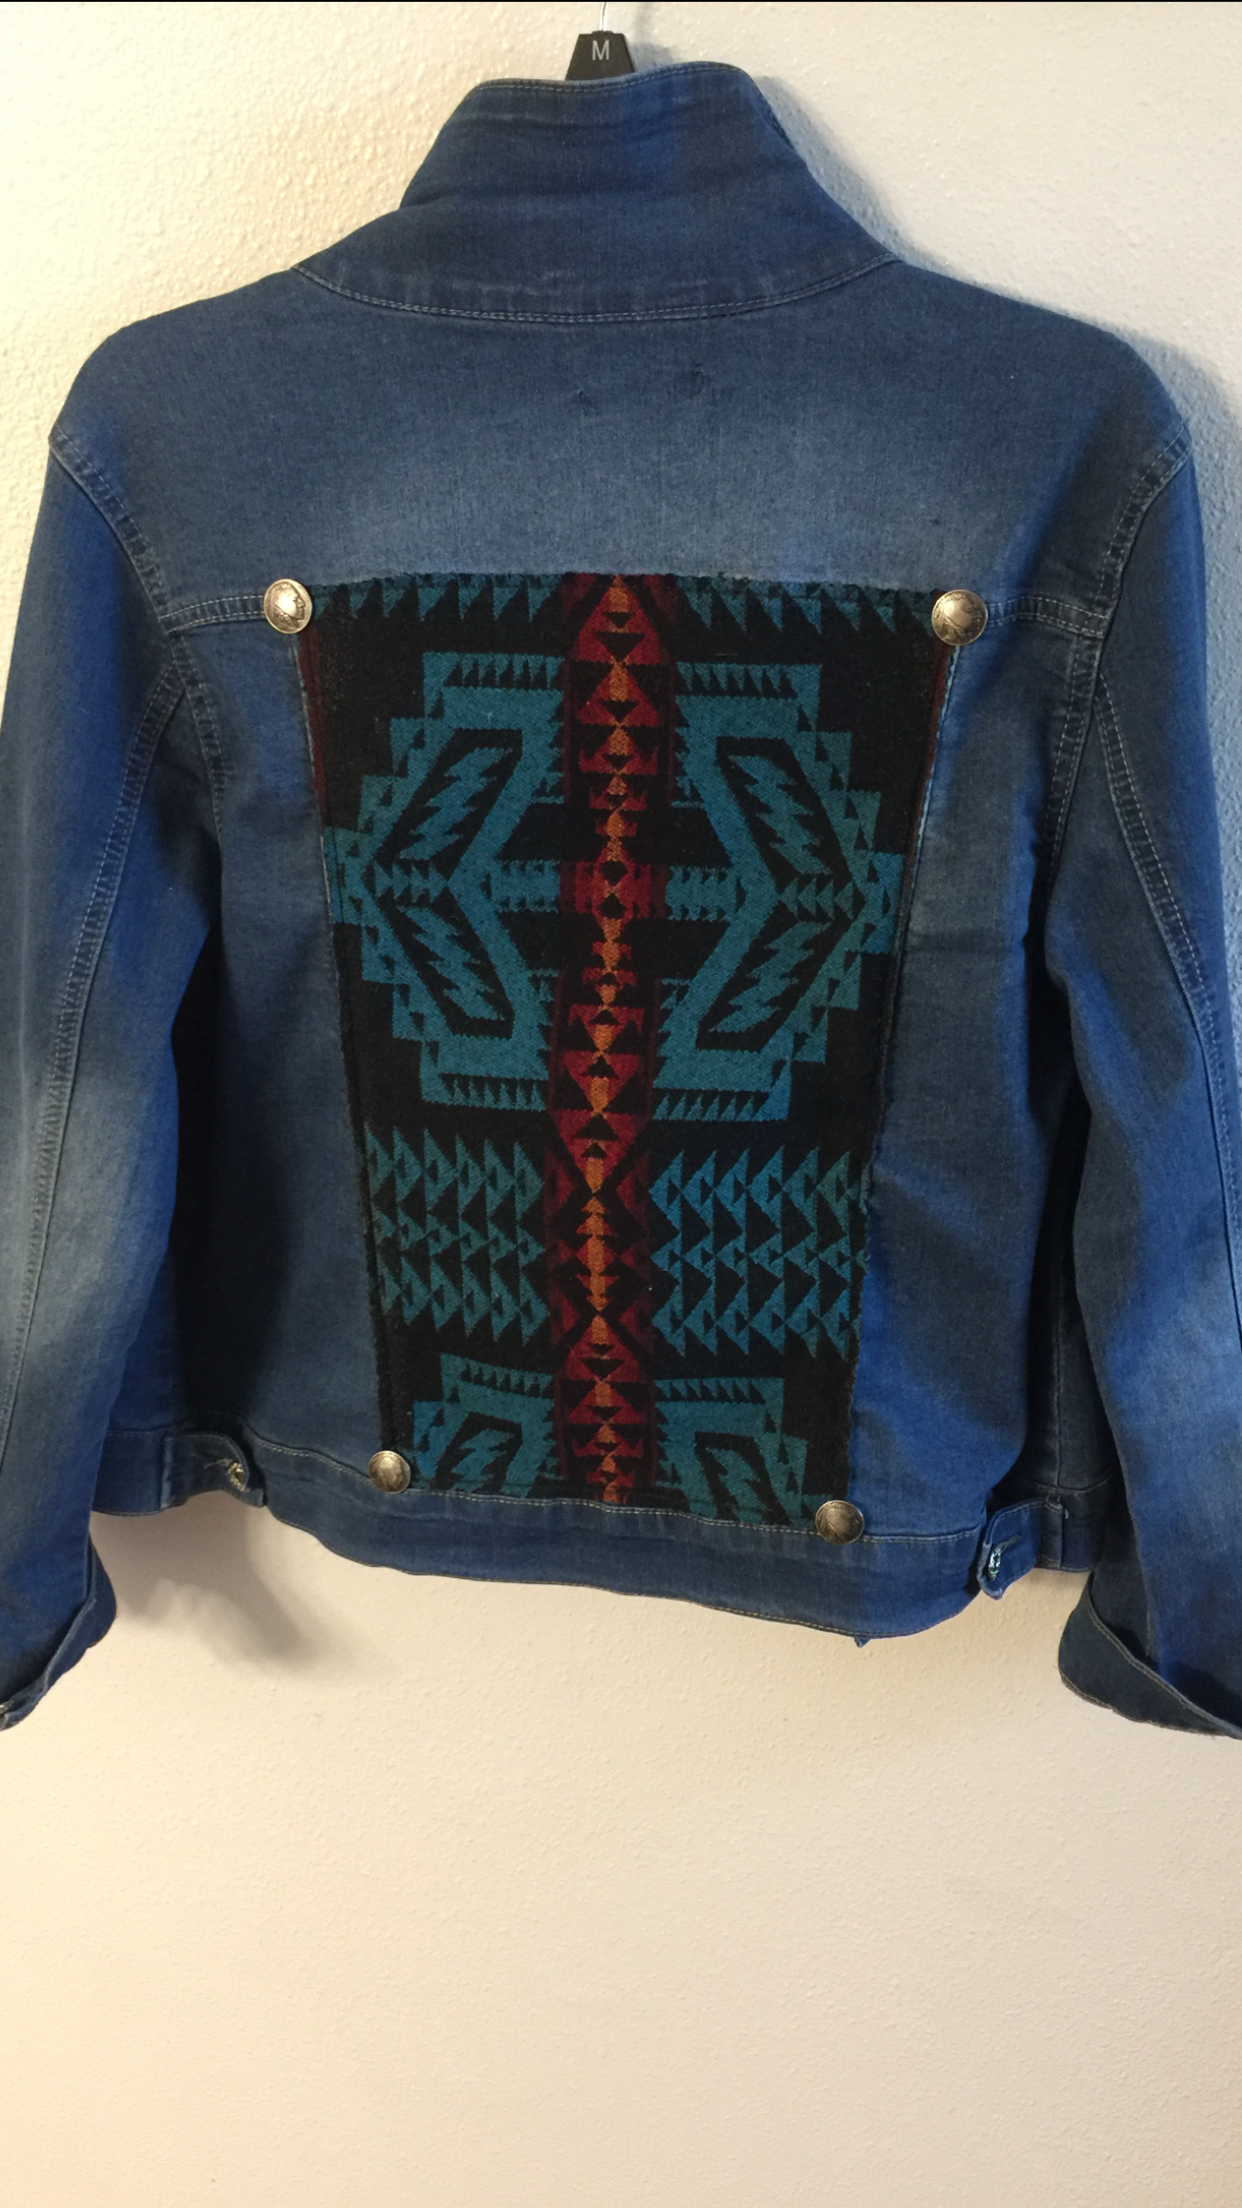 Show Off Your Style Jean Jacket Jackets Pendleton Fabric [ 2208 x 1242 Pixel ]